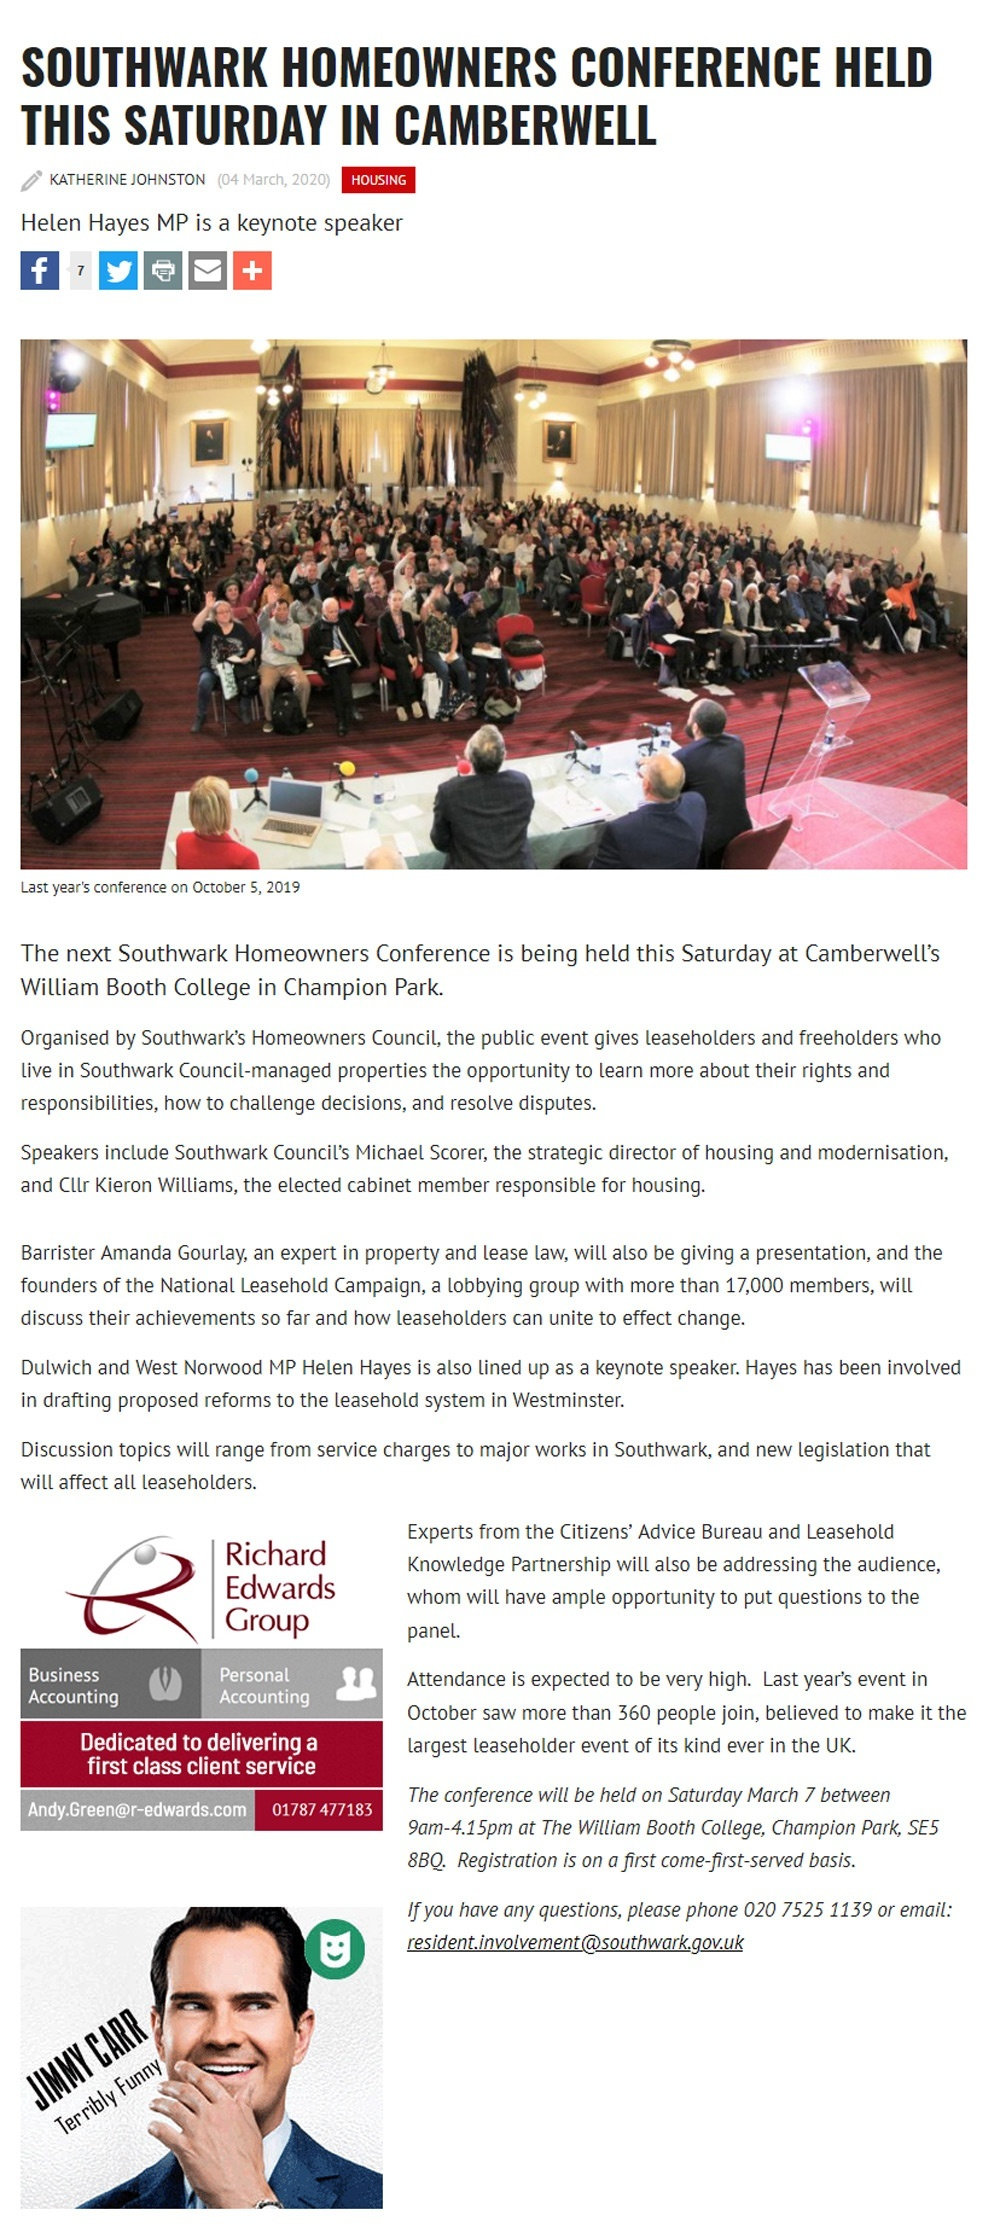 htsouthwark-homeowners-conference-held-this-saturday-in-camberwell Helen Hayes MP is a keynote speaker